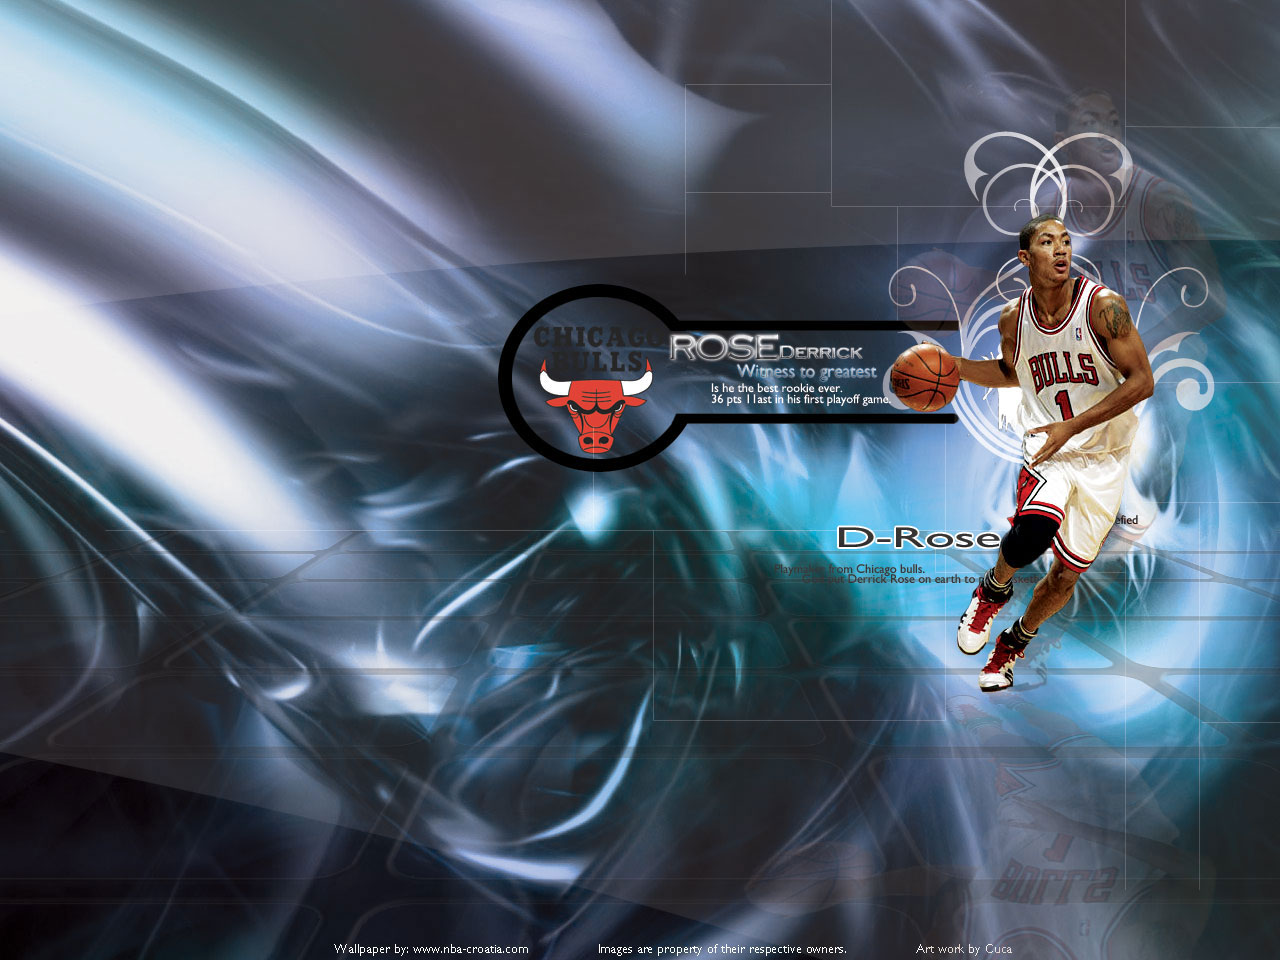 Derrick Rose 1st Playoff Game Wallpaper Basketball Wallpapers at 1280x960